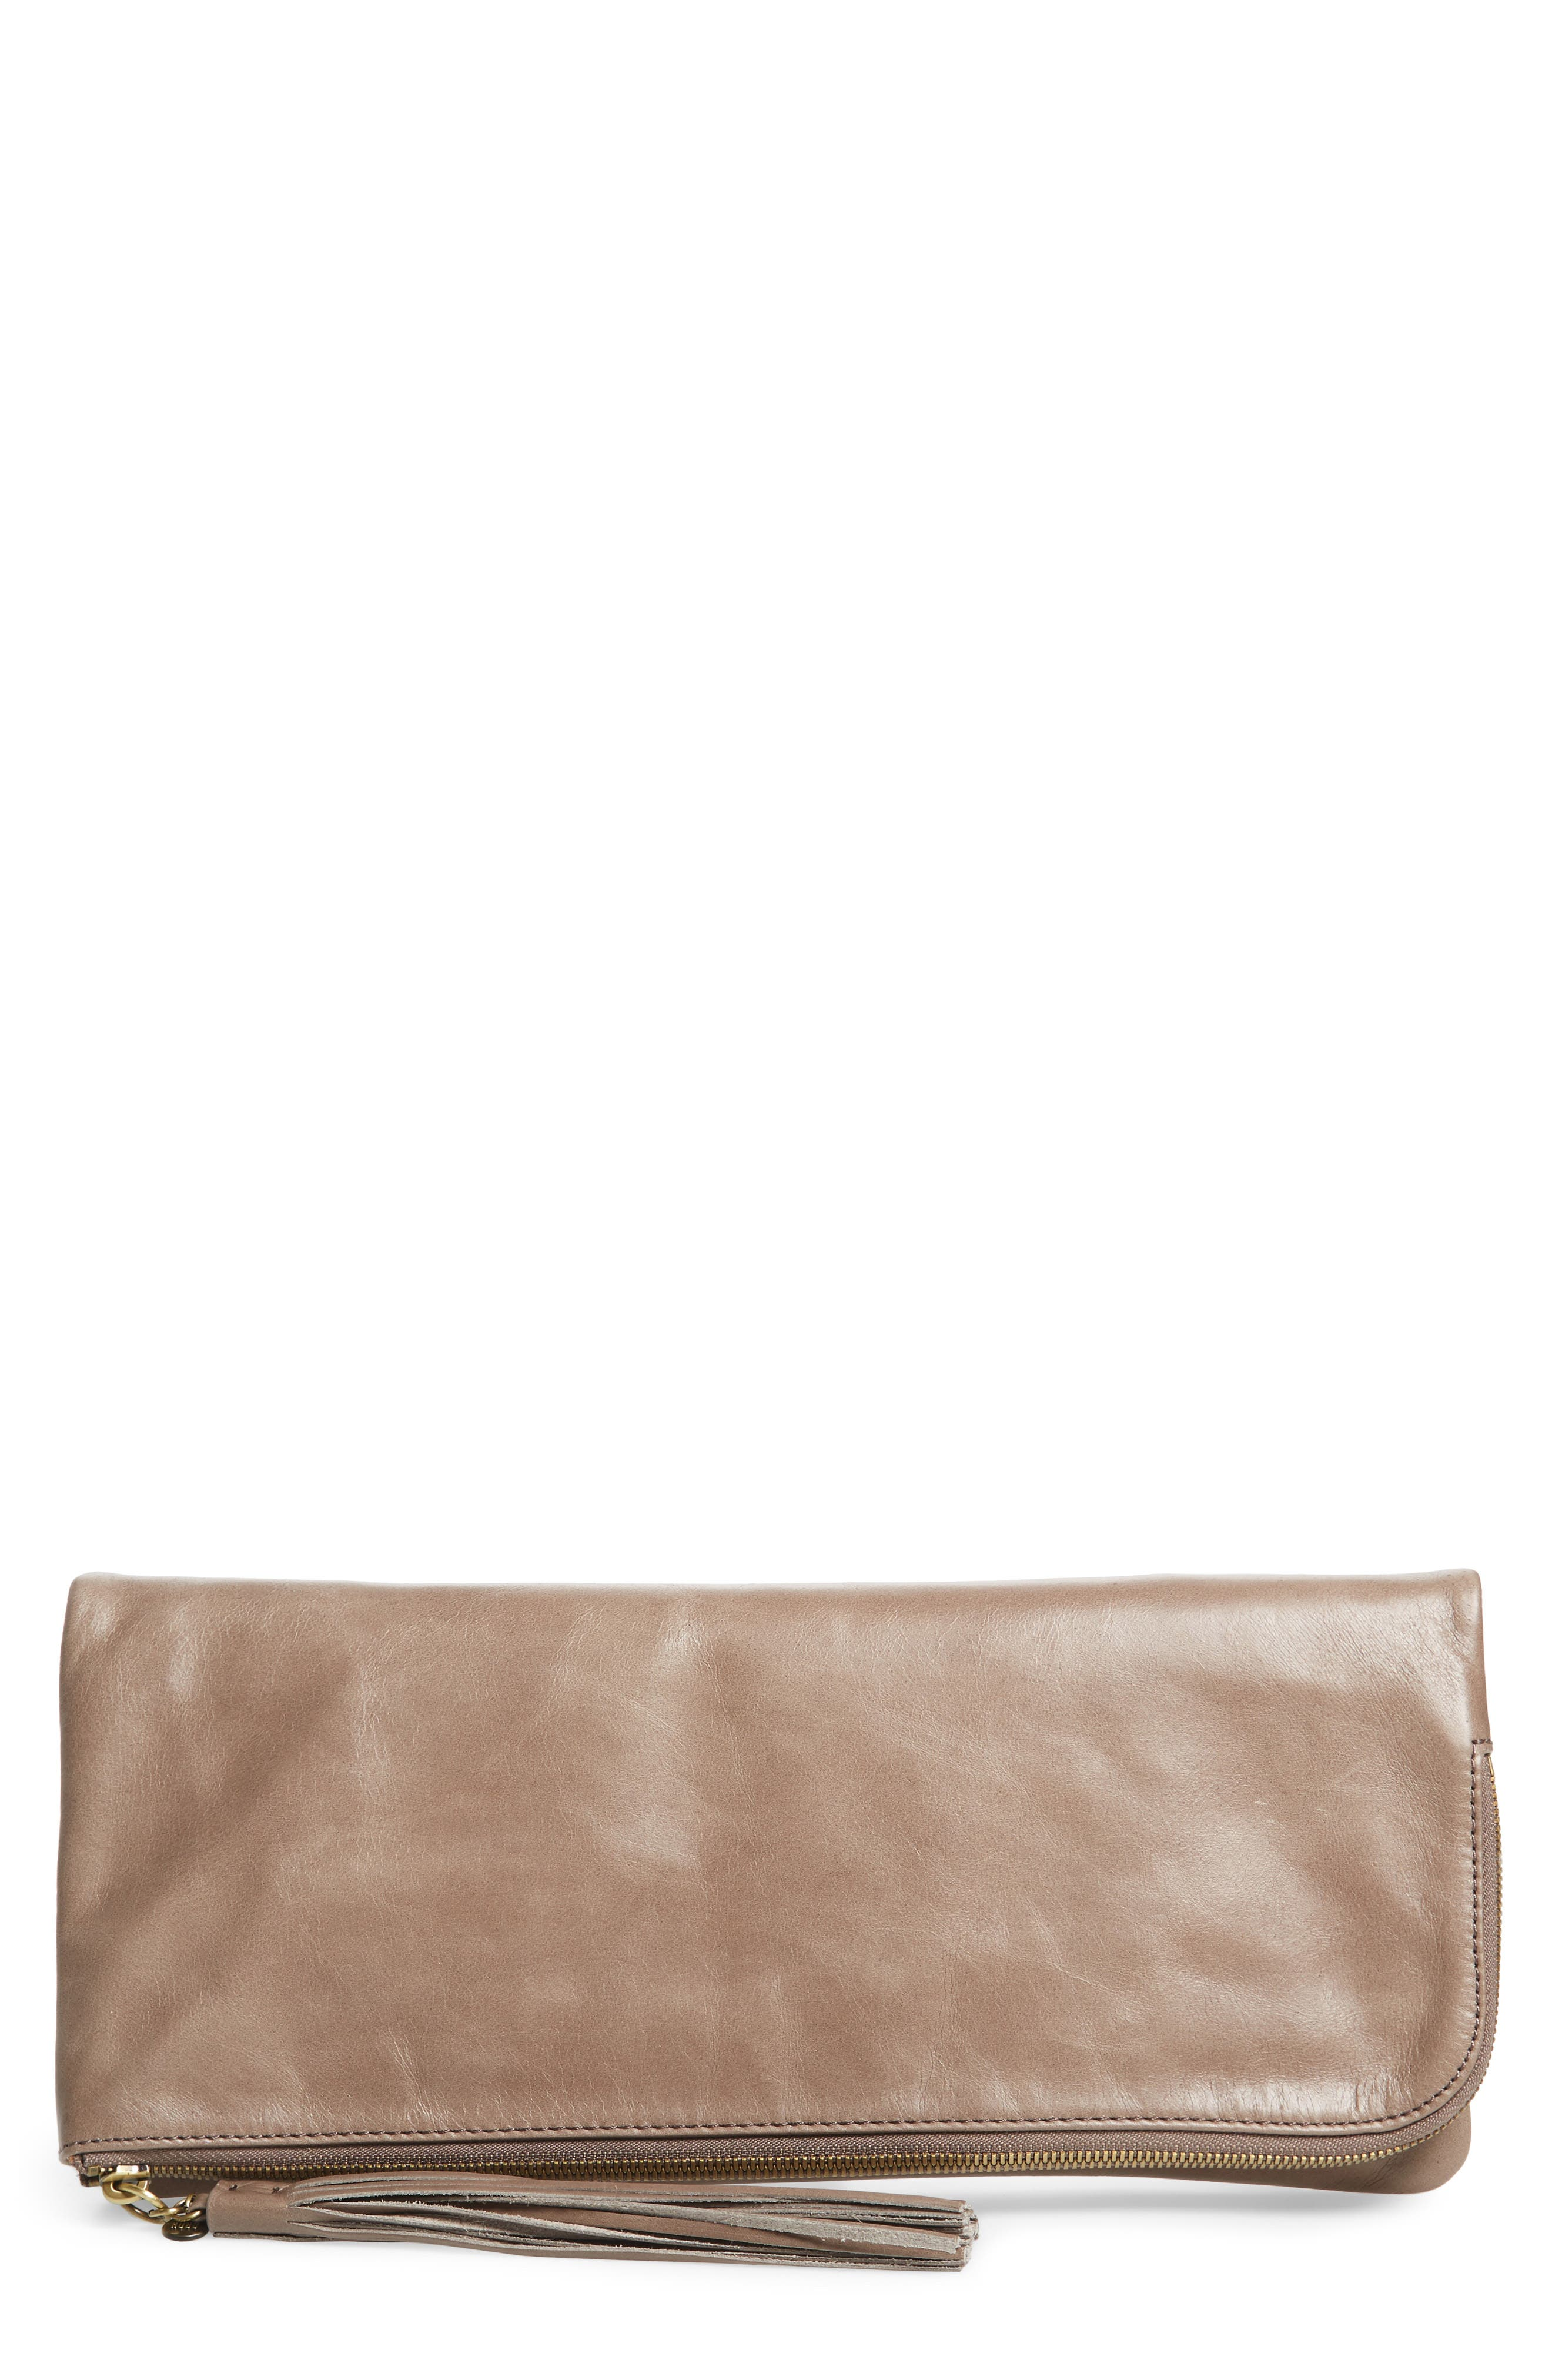 Raine Calfskin Leather Foldover Clutch,                             Main thumbnail 3, color,